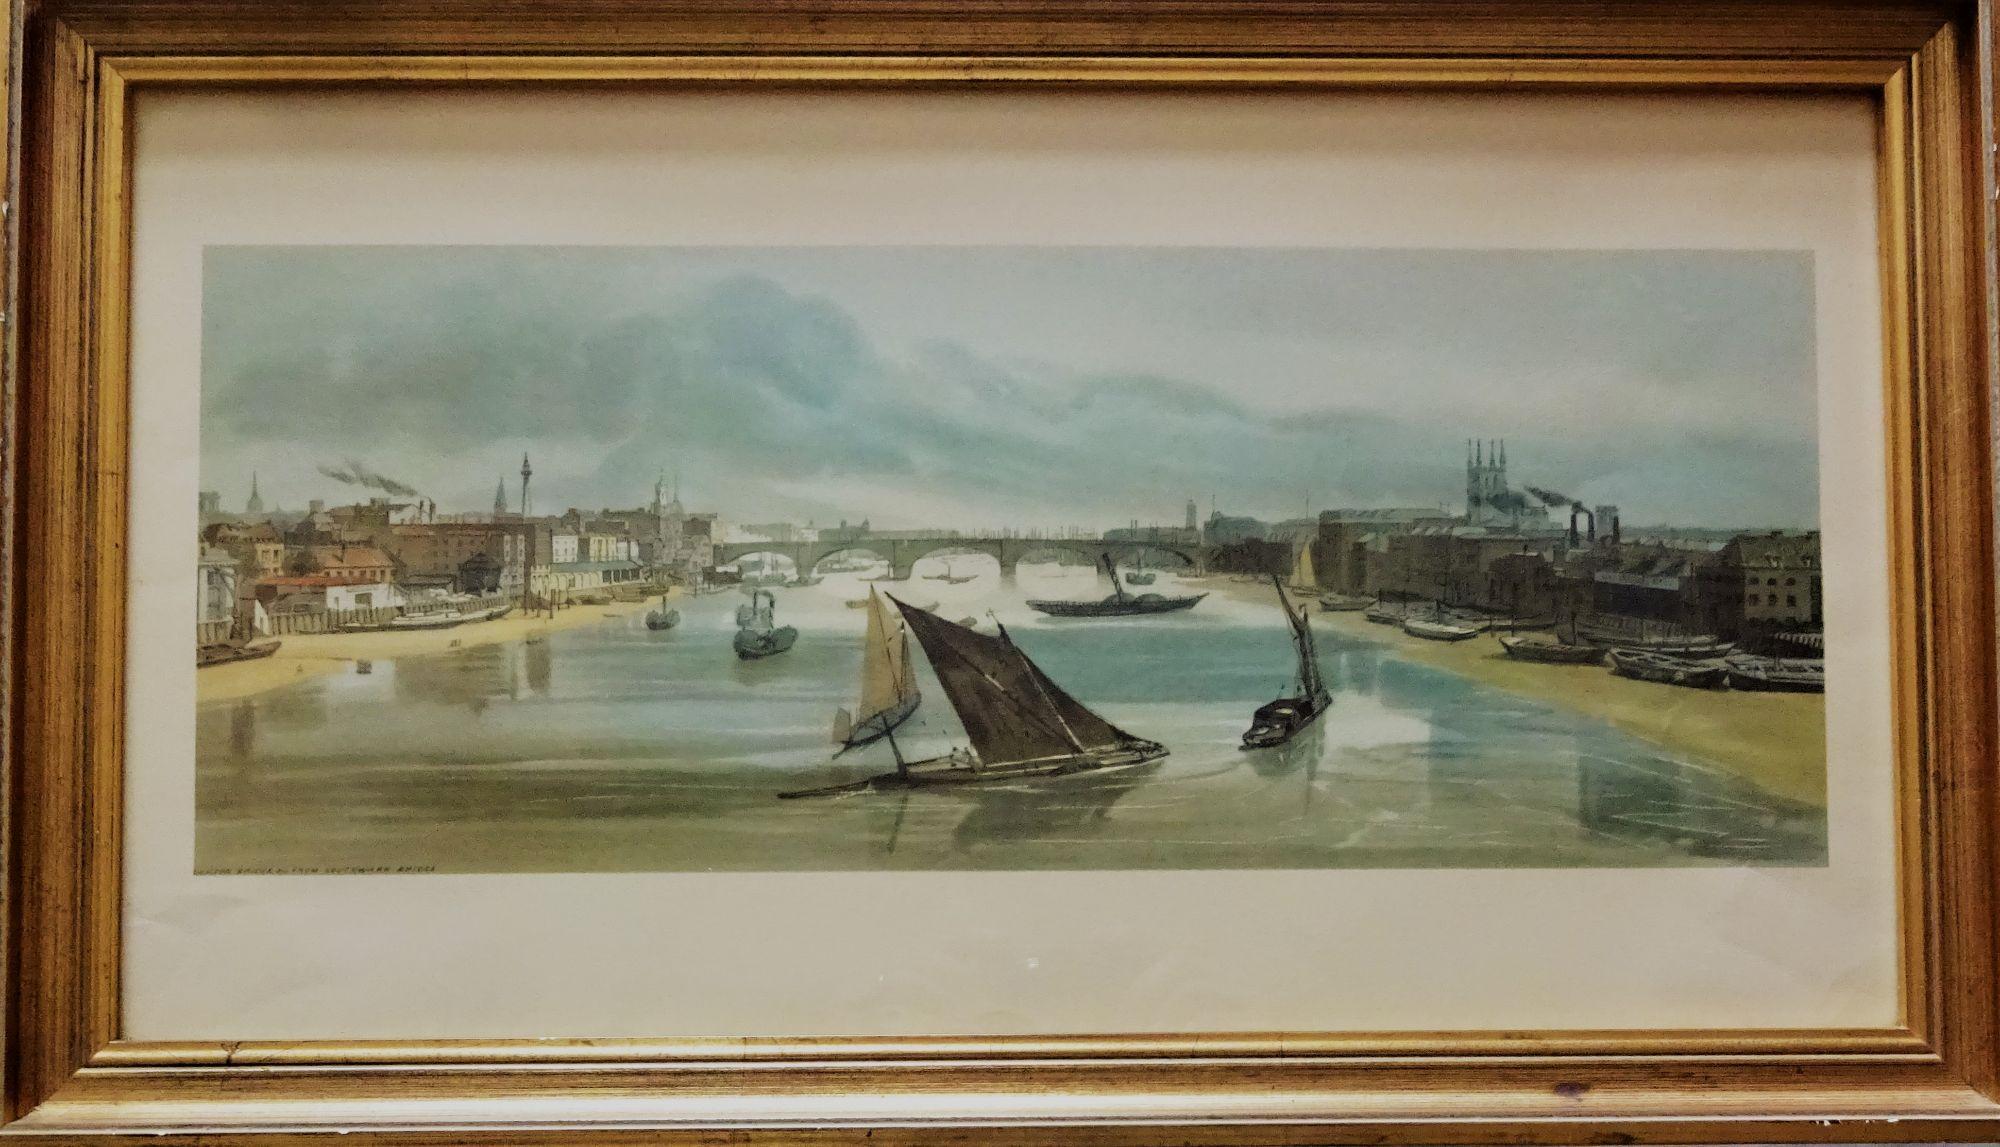 New London Bridge viewed from Southwark Bridge, River Thames, gravure print, c1960. Framed.